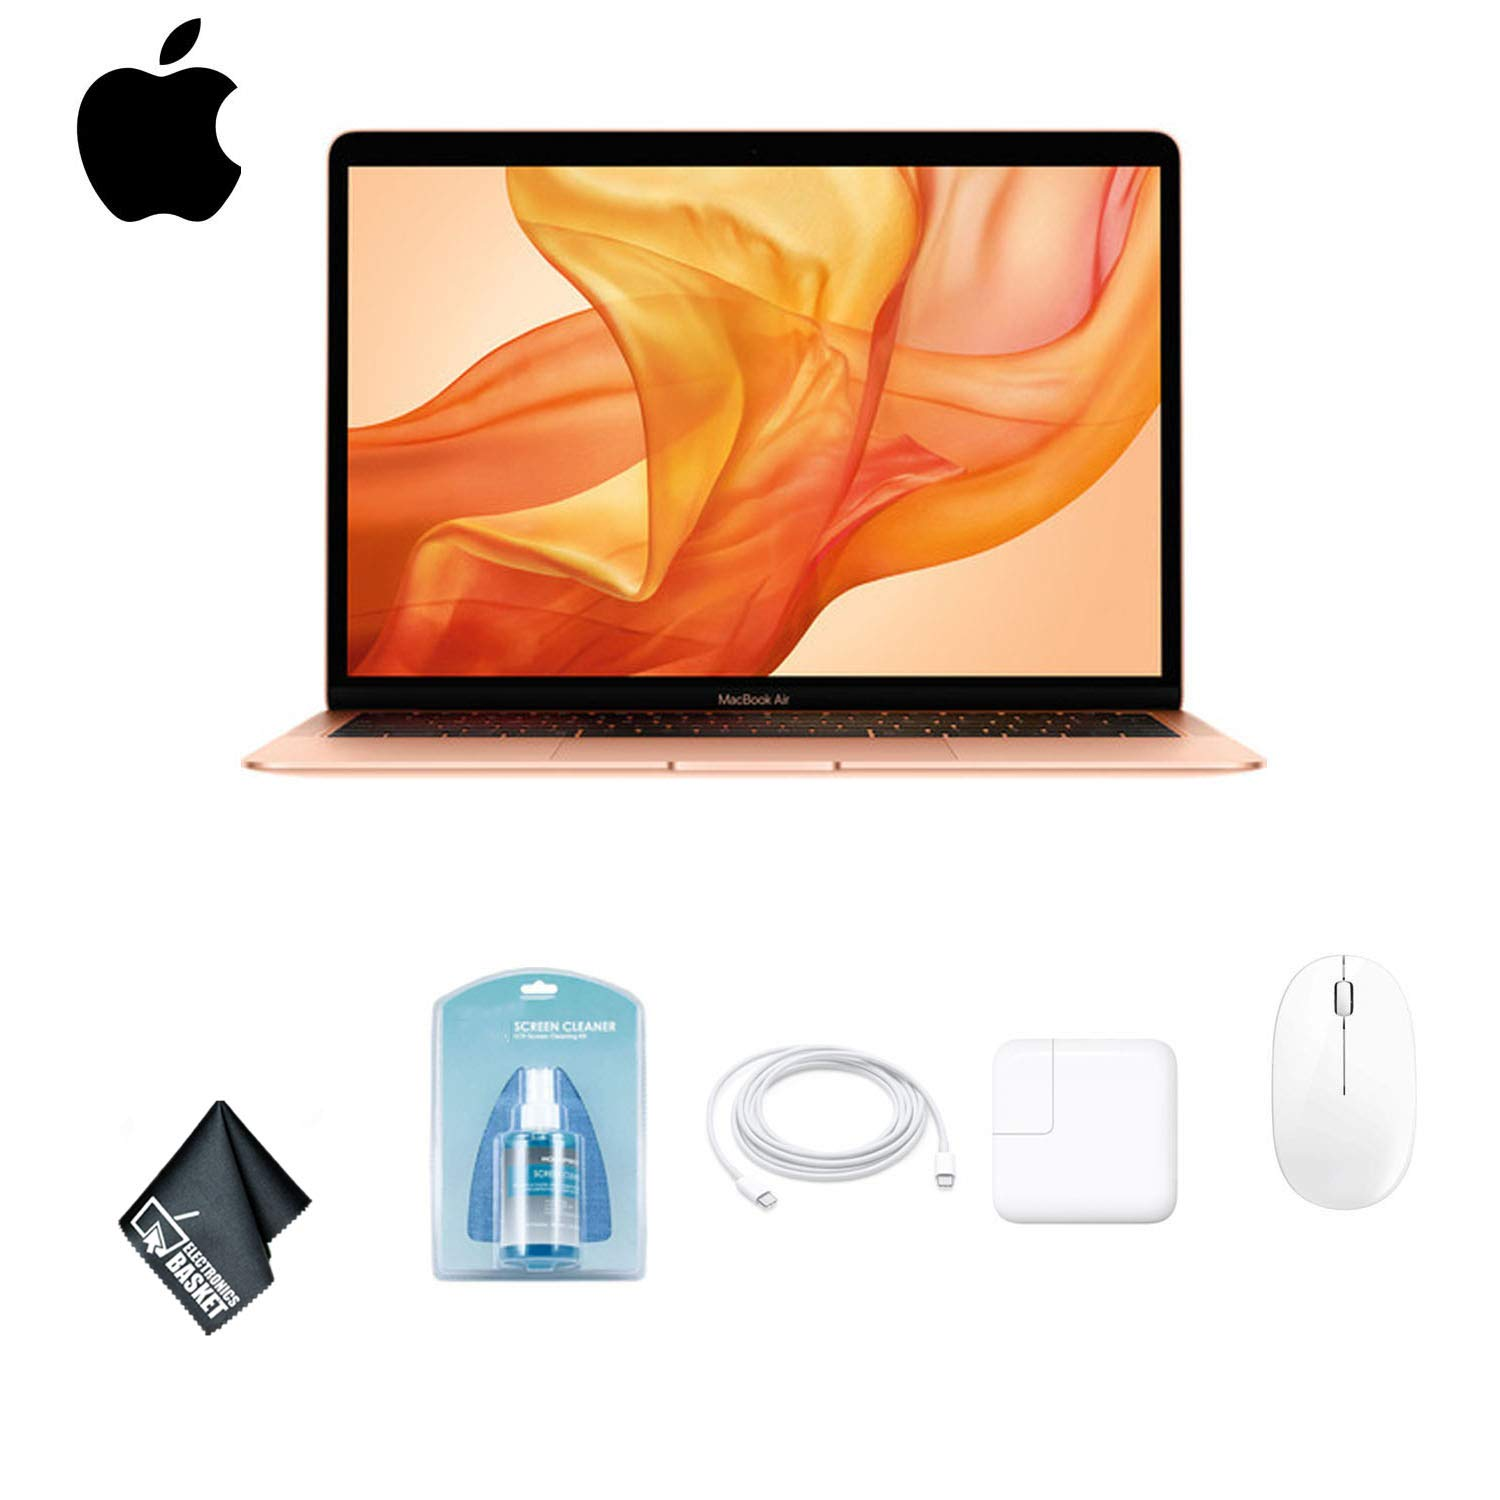 Apple 13.3 Inch Gold MacBook Air Laptop with Retina Display (Latest Model | 2018 Version | Gold) MREA2LL/A 128GB SSD Bundle with Mouse + More